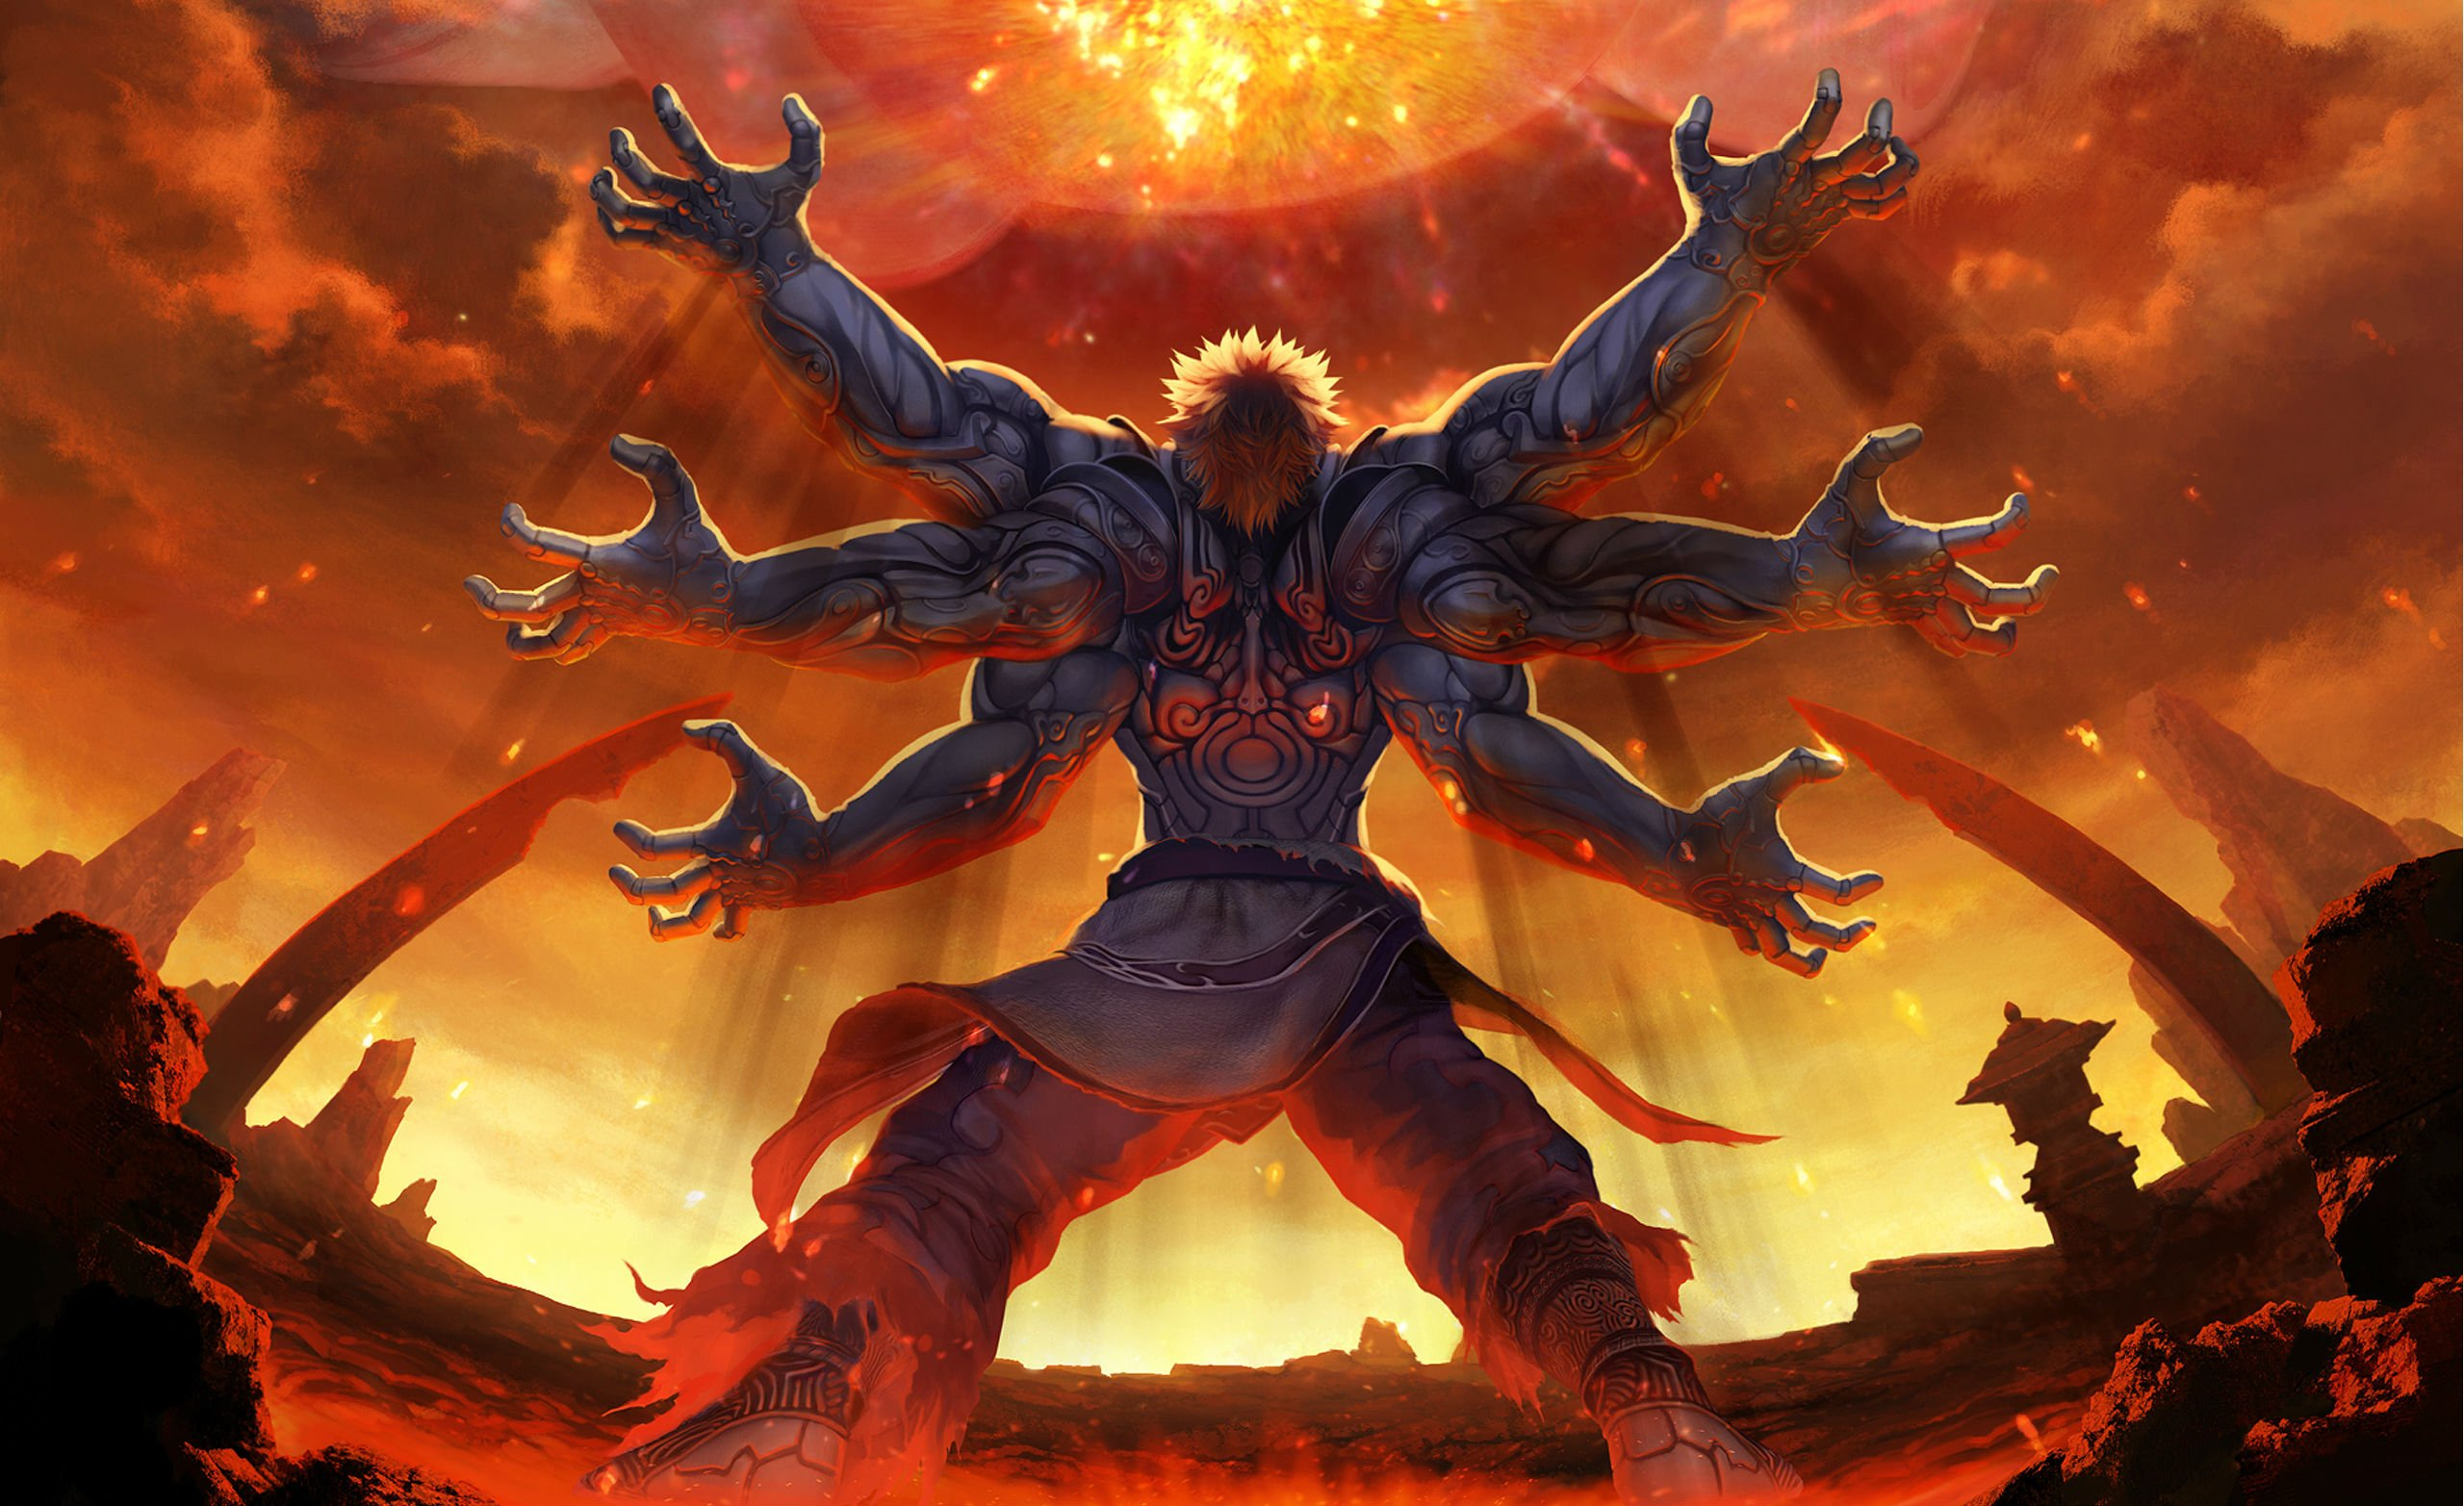 14 Asuras Wrath HD Wallpapers Background Images 2560x1565